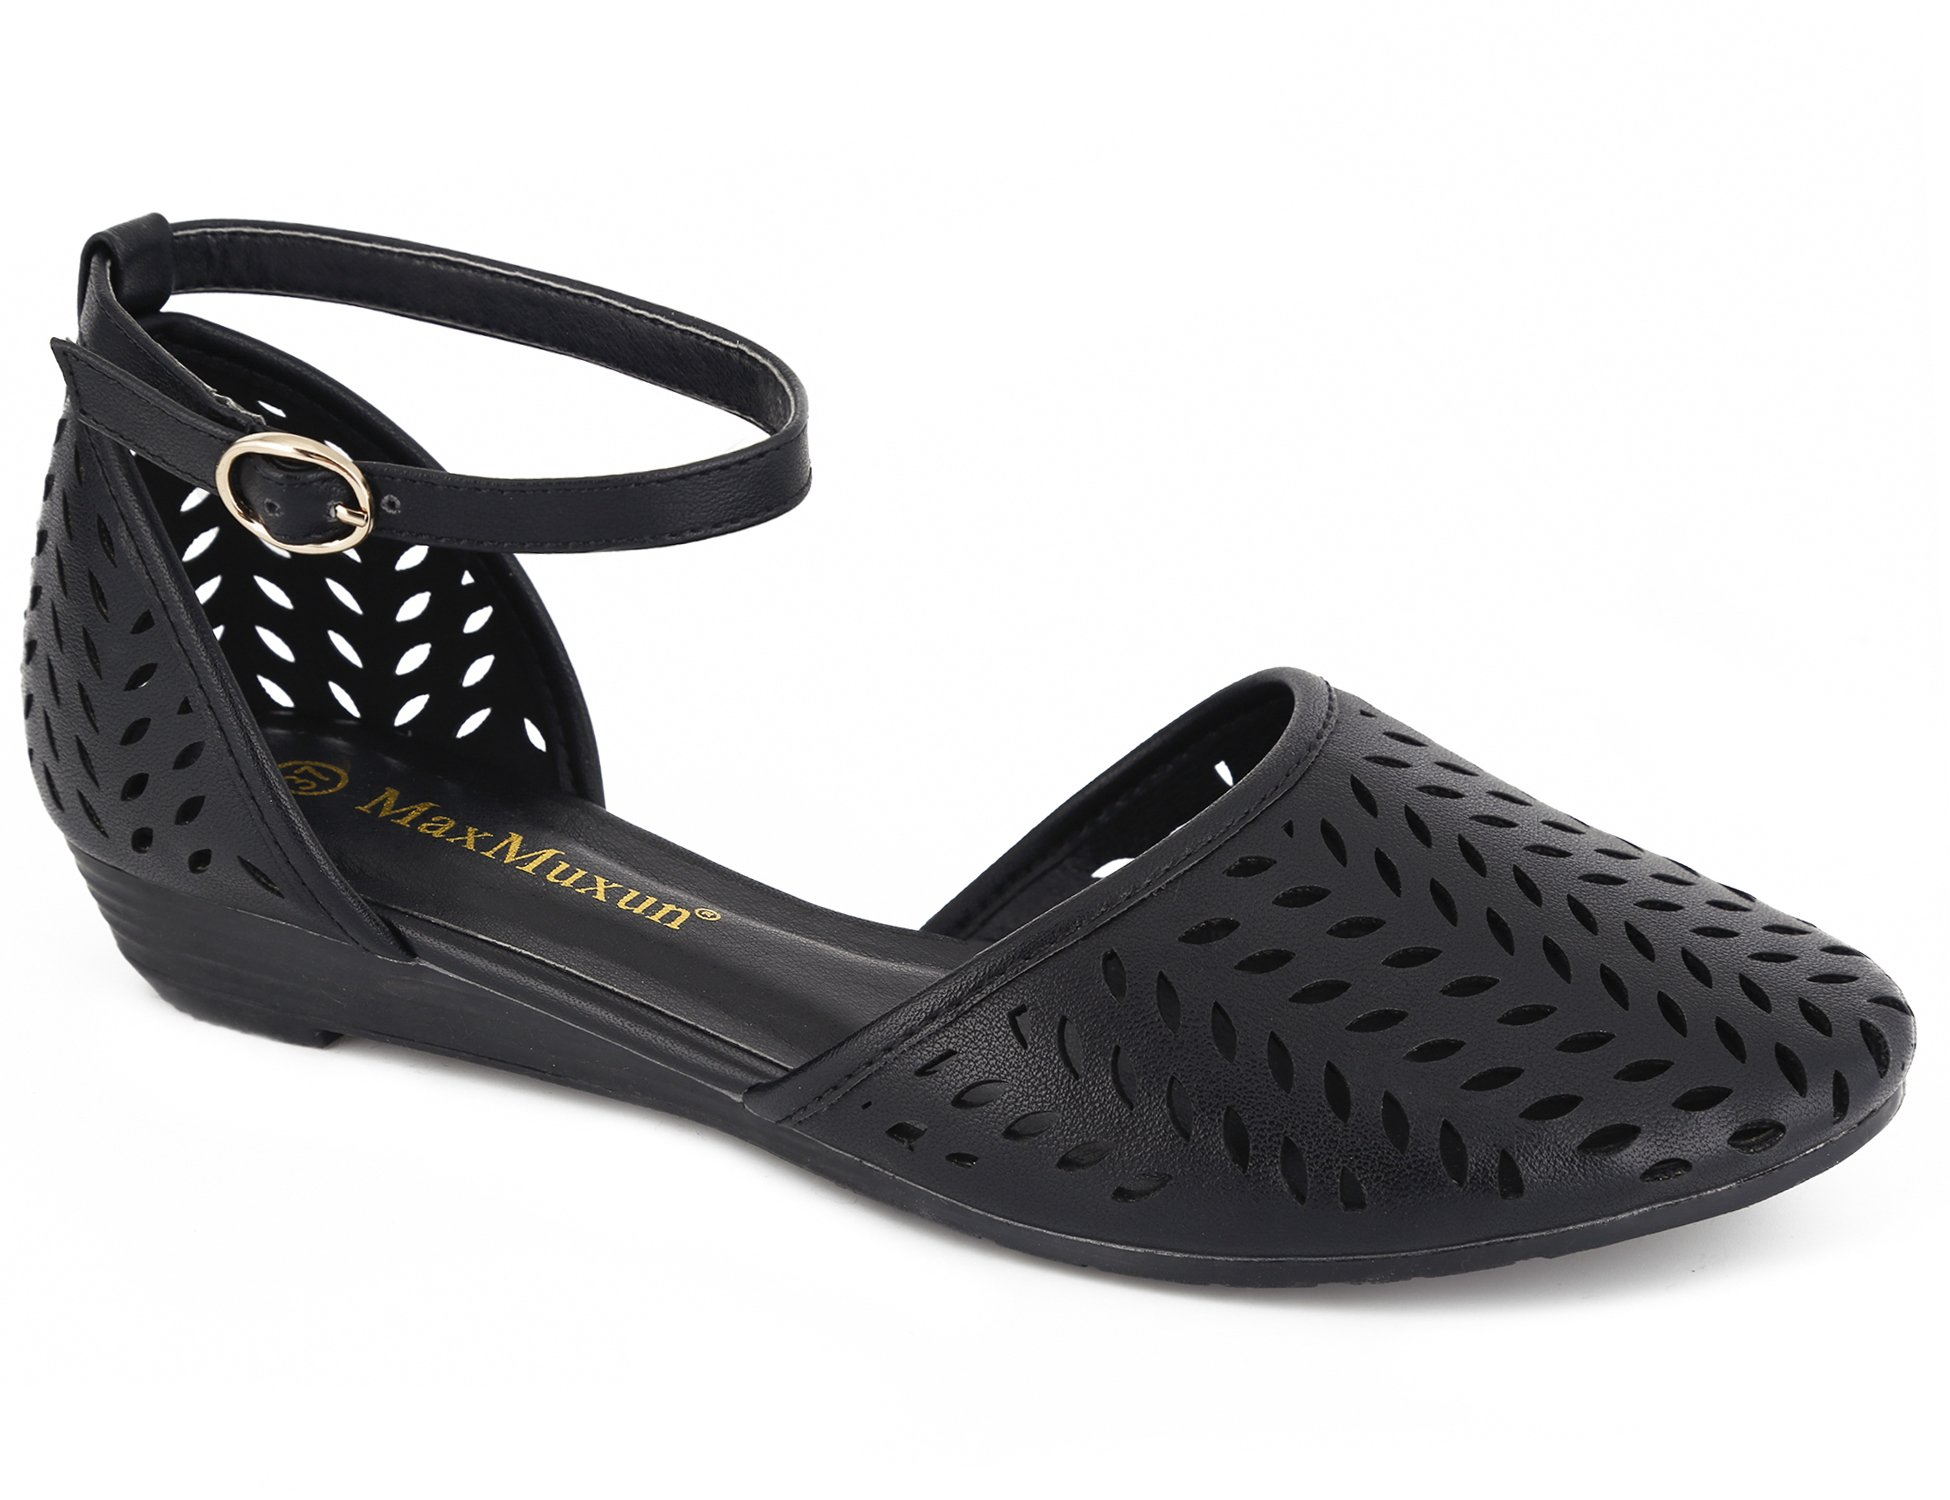 MaxMuxun Womens Roman Ankle Strap Cage Closed Toe Black Flat Sandals Size 9